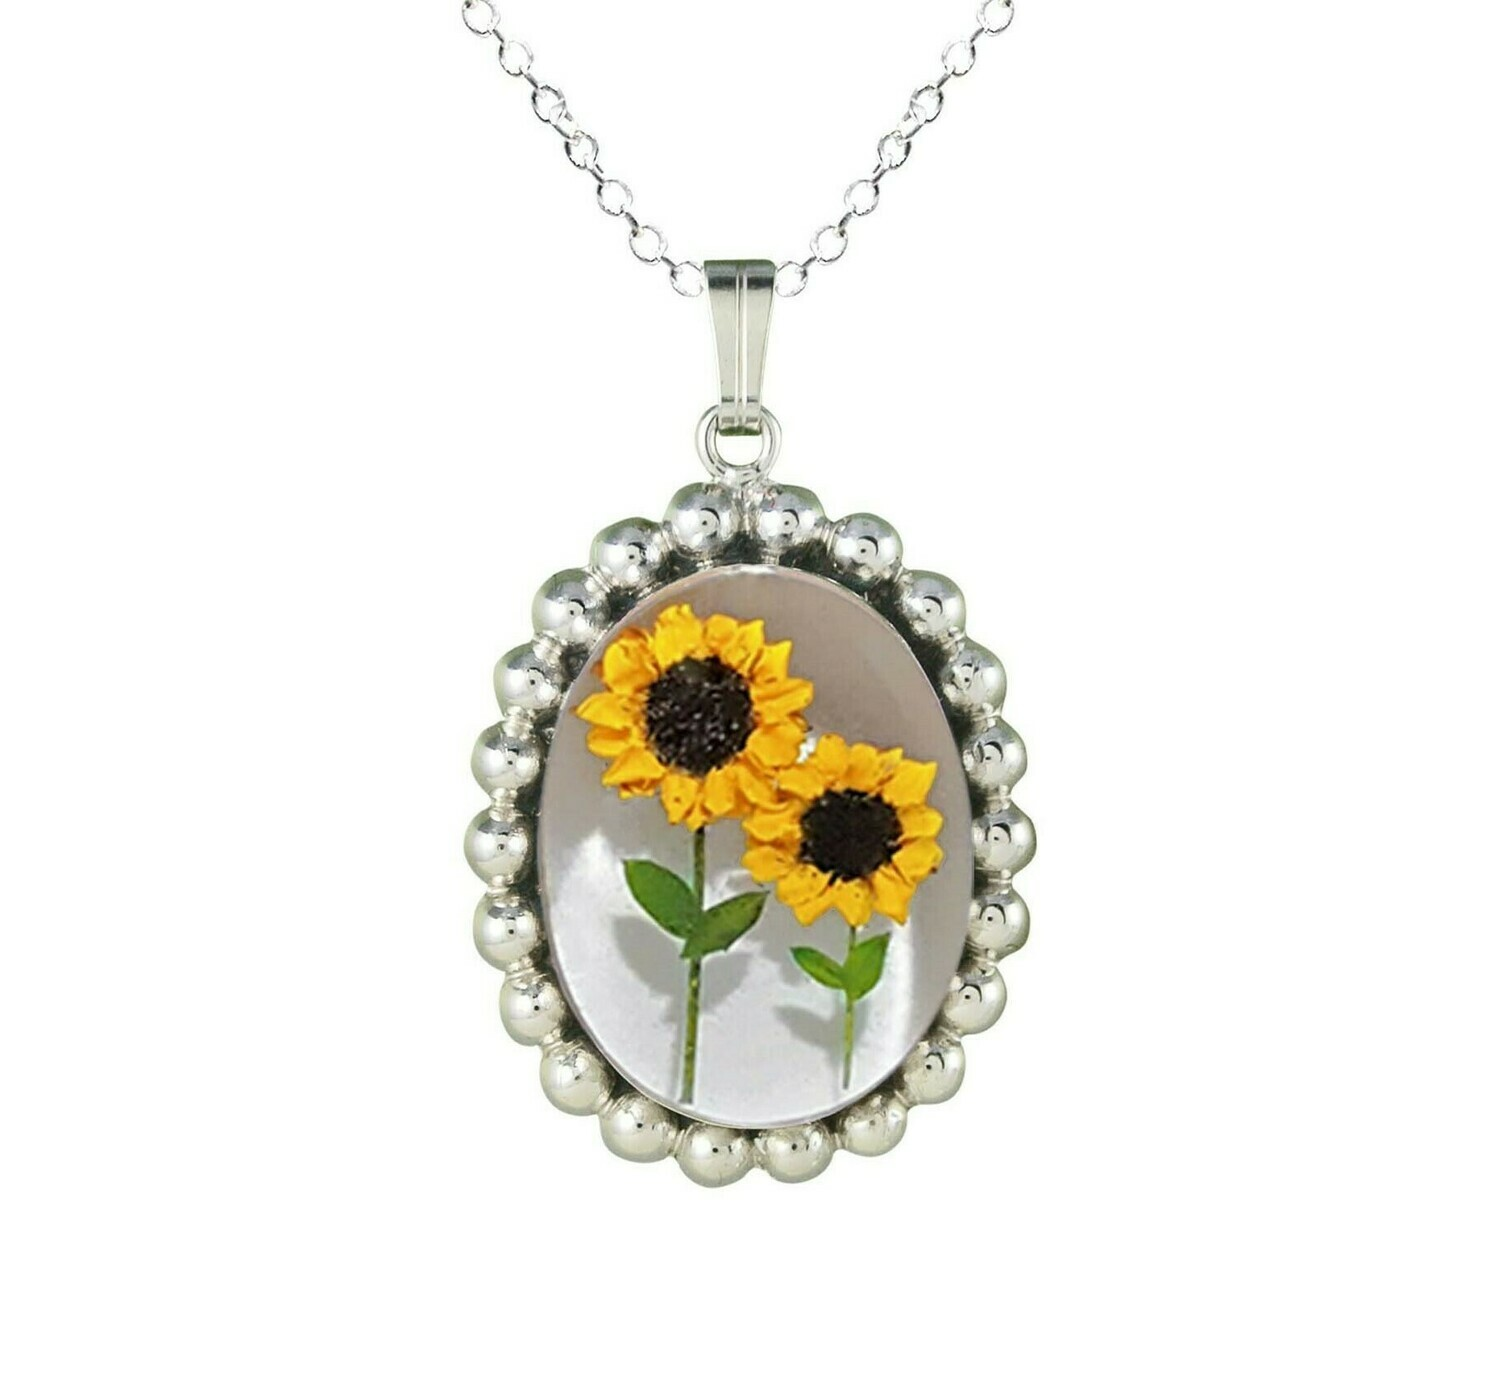 Sunflower Necklace, Large Medallion, White Background